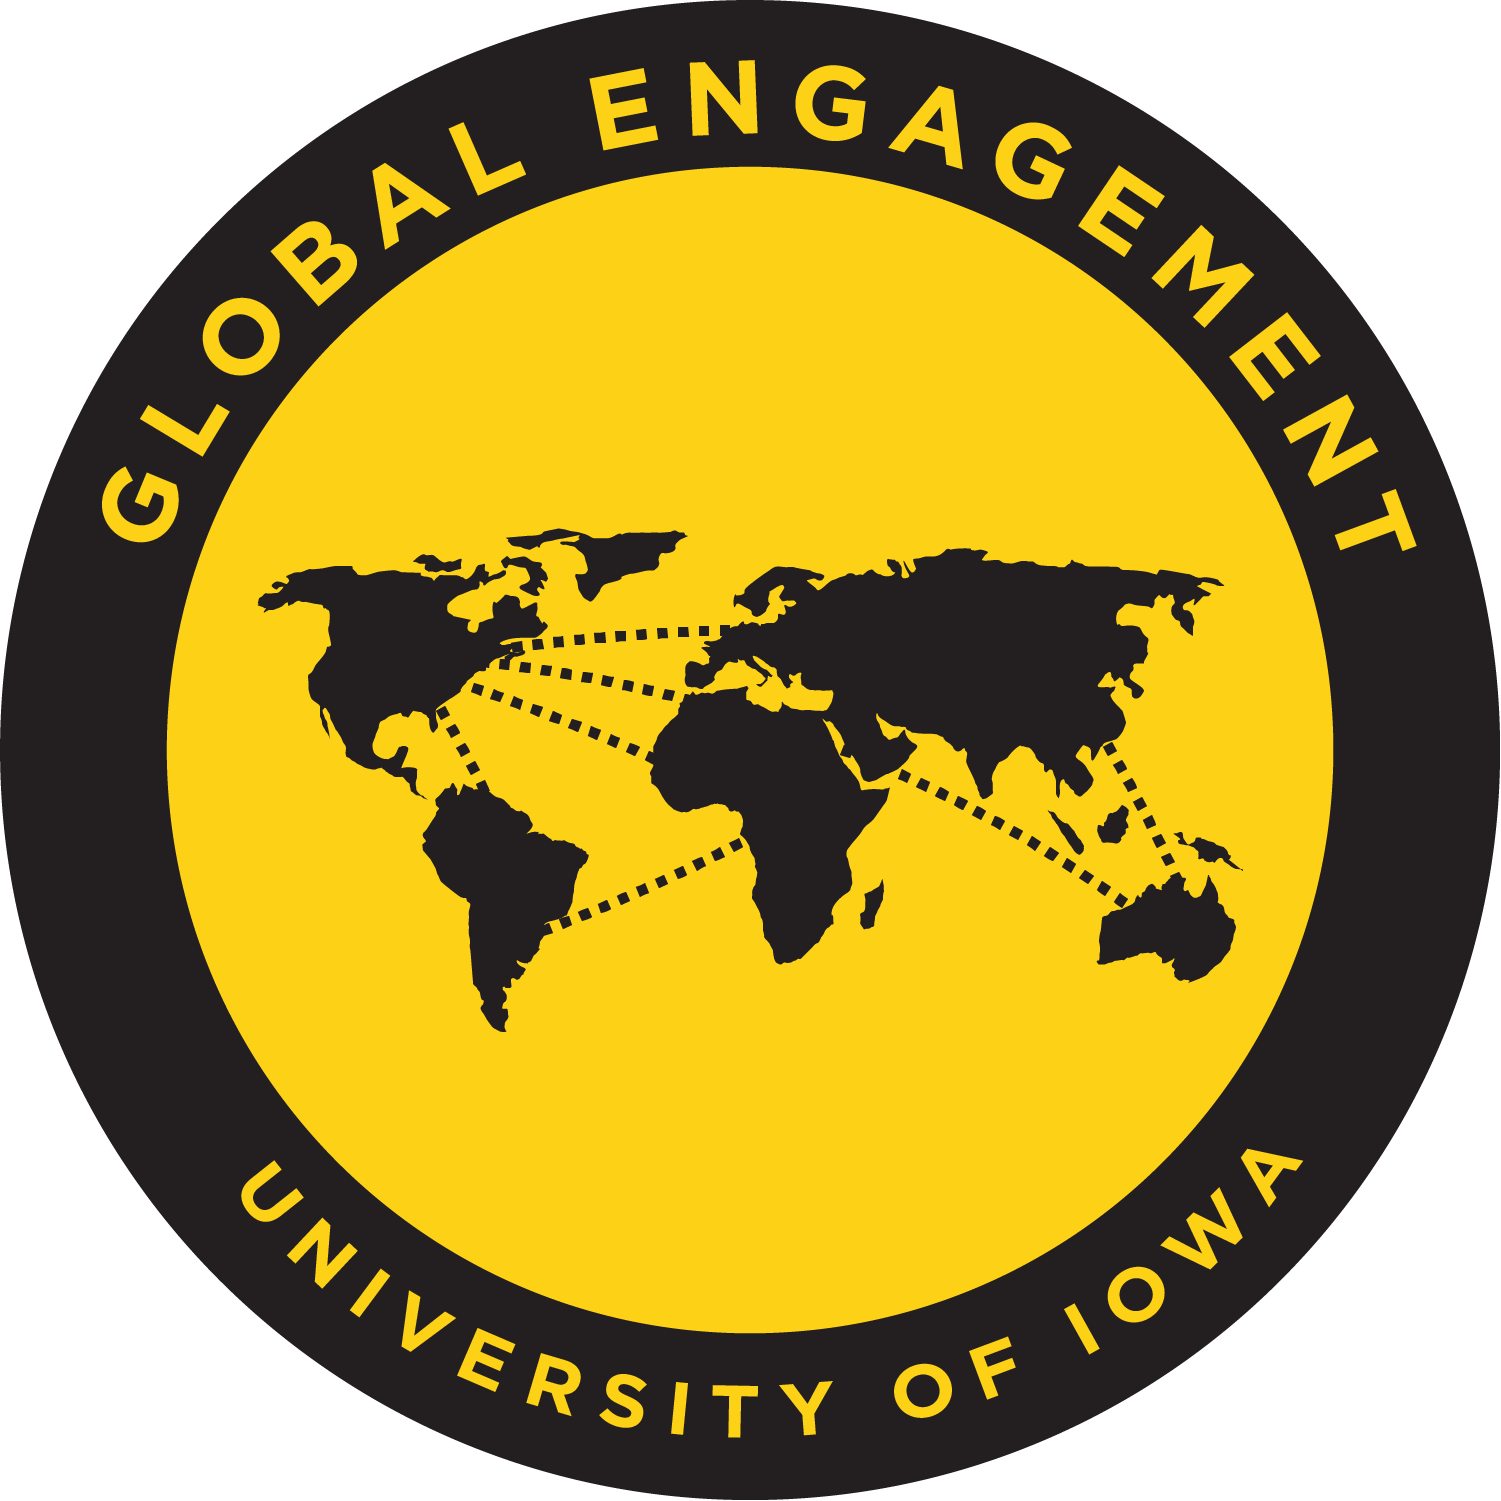 Merit global engagment 2018 final